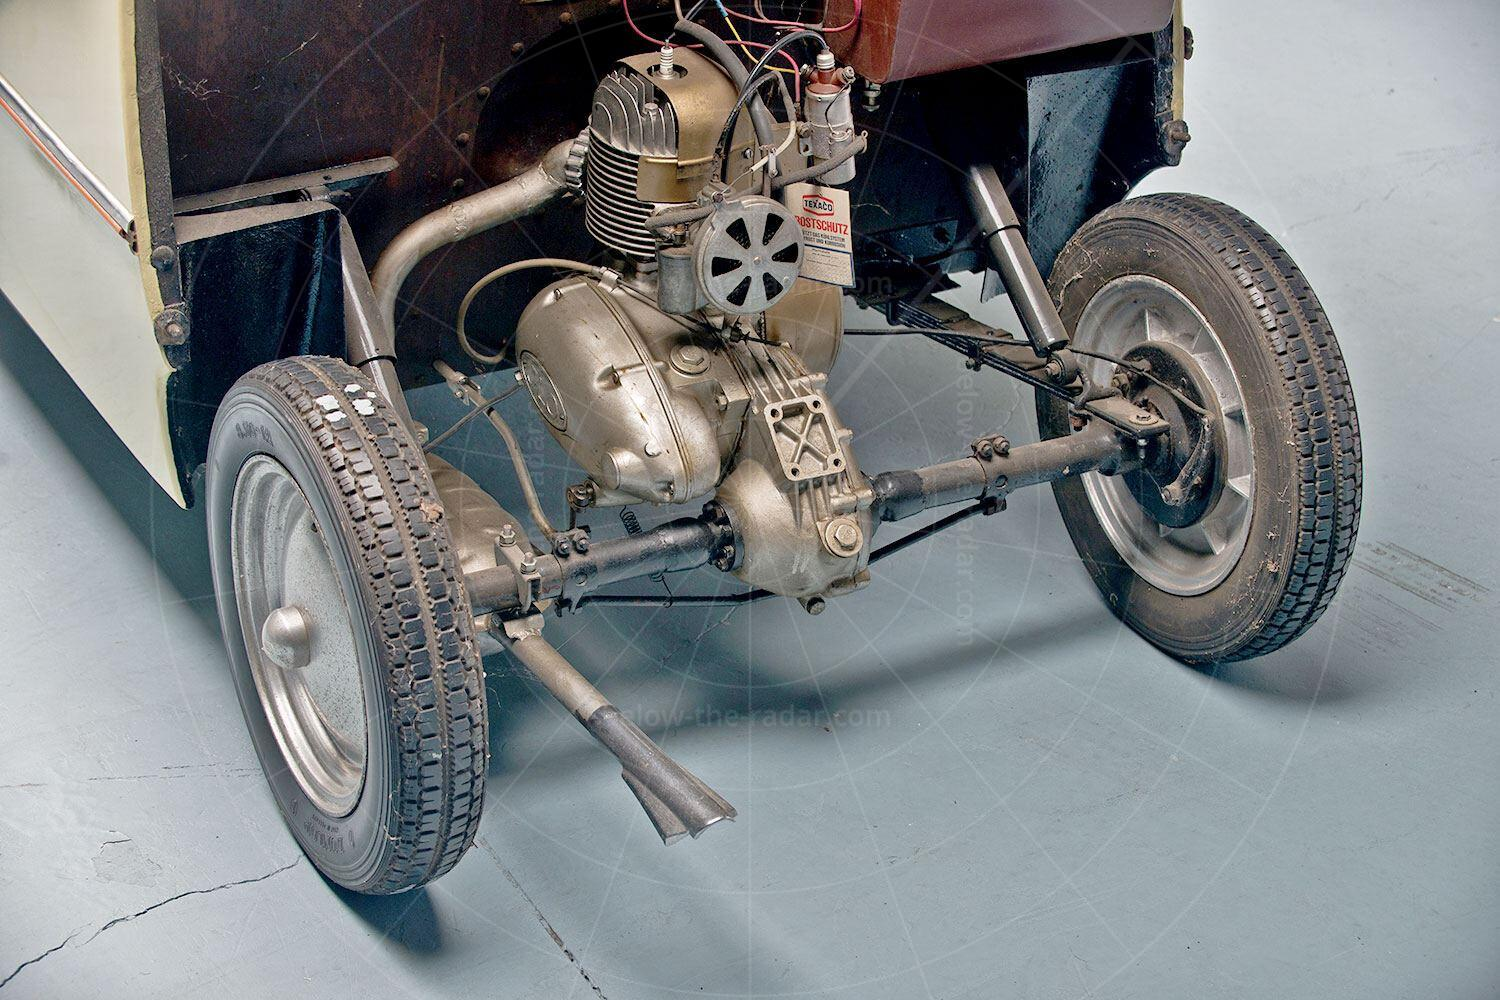 Daus microcar prototype engine Pic: RM Sotheby's   Daus microcar prototype engine